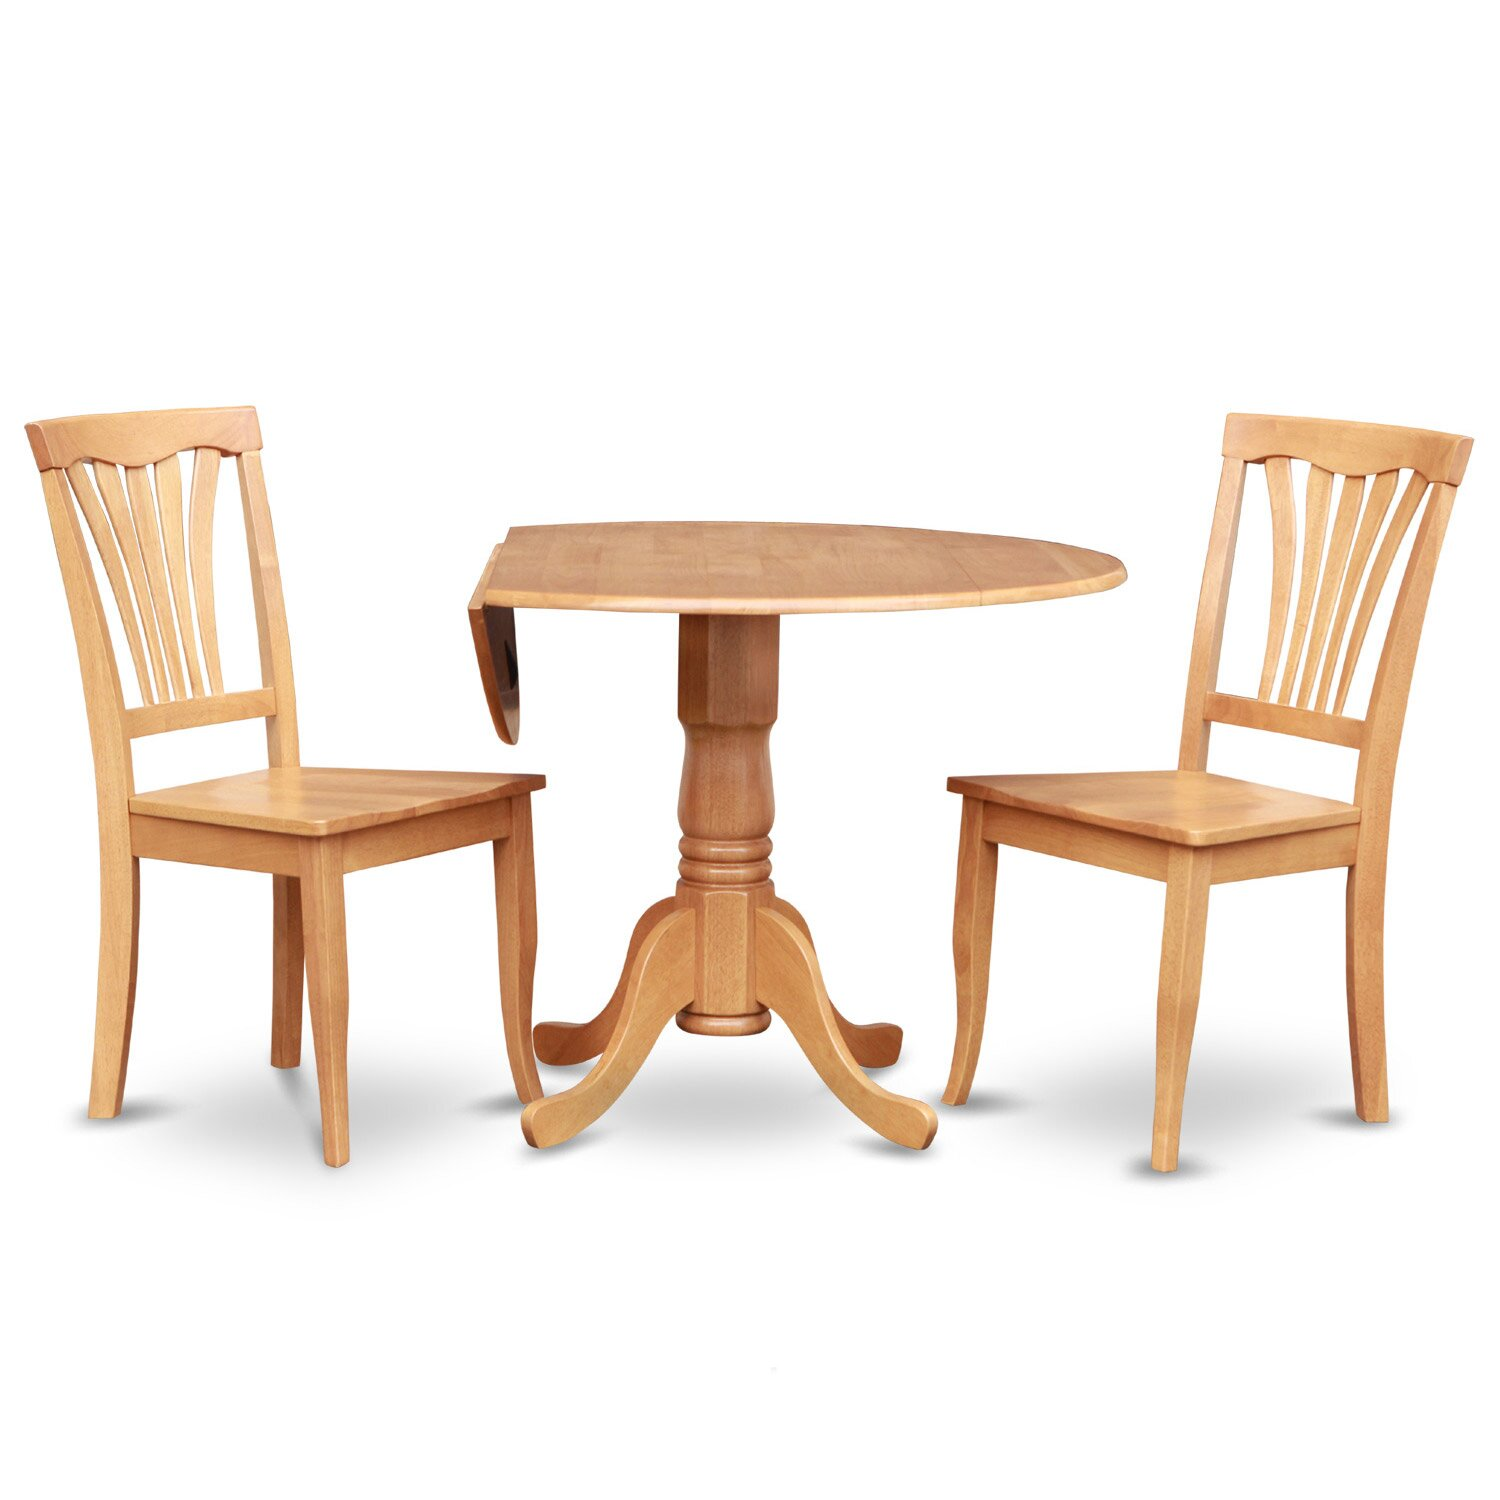 Timeless classic kitchen tables and chairs configurations for Small kitchen furniture